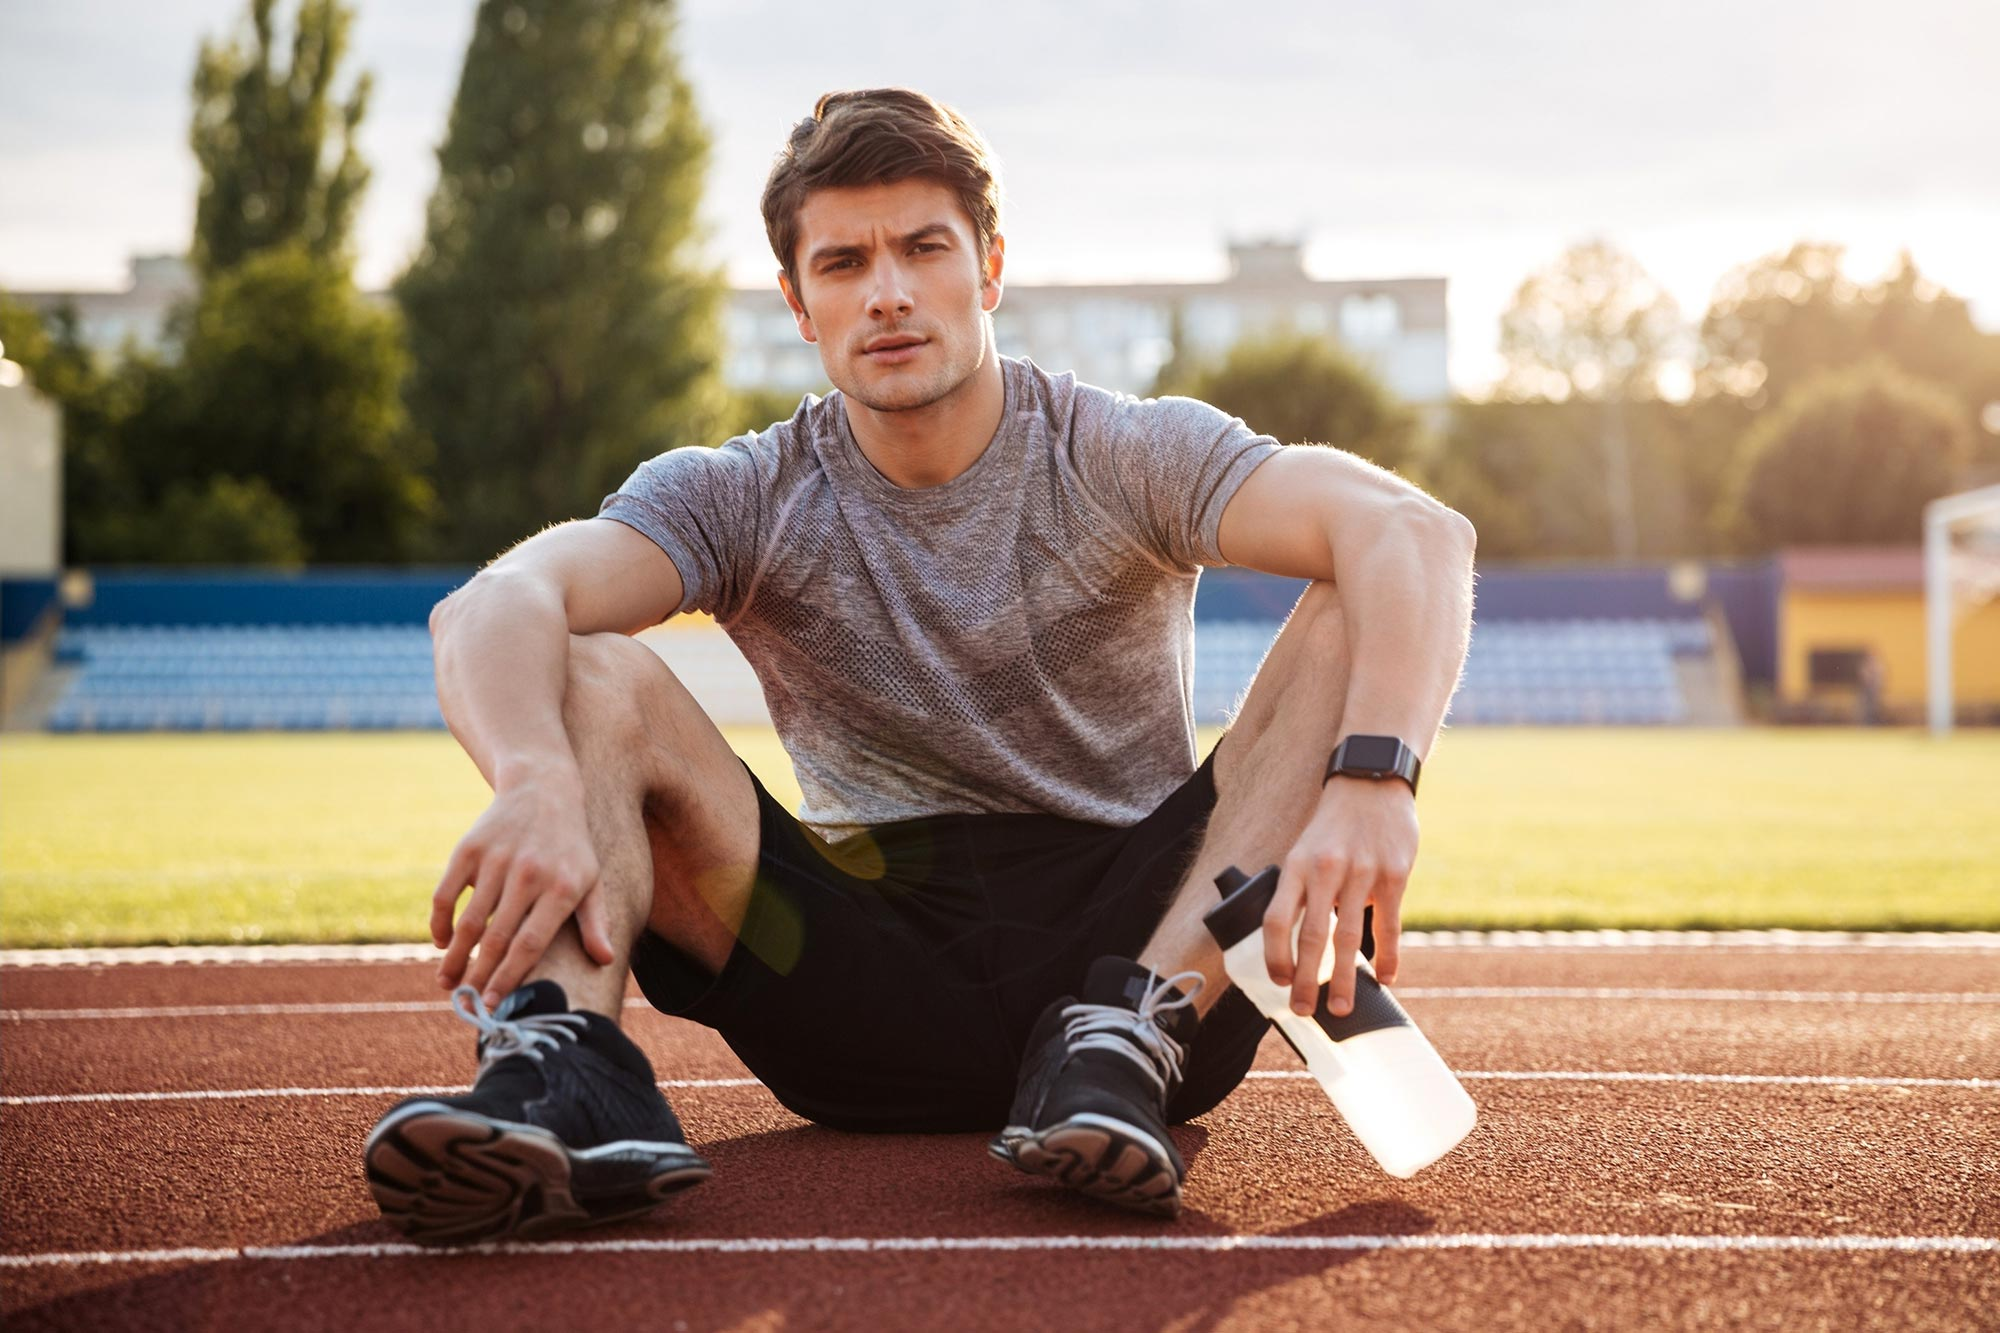 Athletes May Have More Than Twice the Risk of Irregular Heart Rhythm – Younger Athletes at Greater Risk